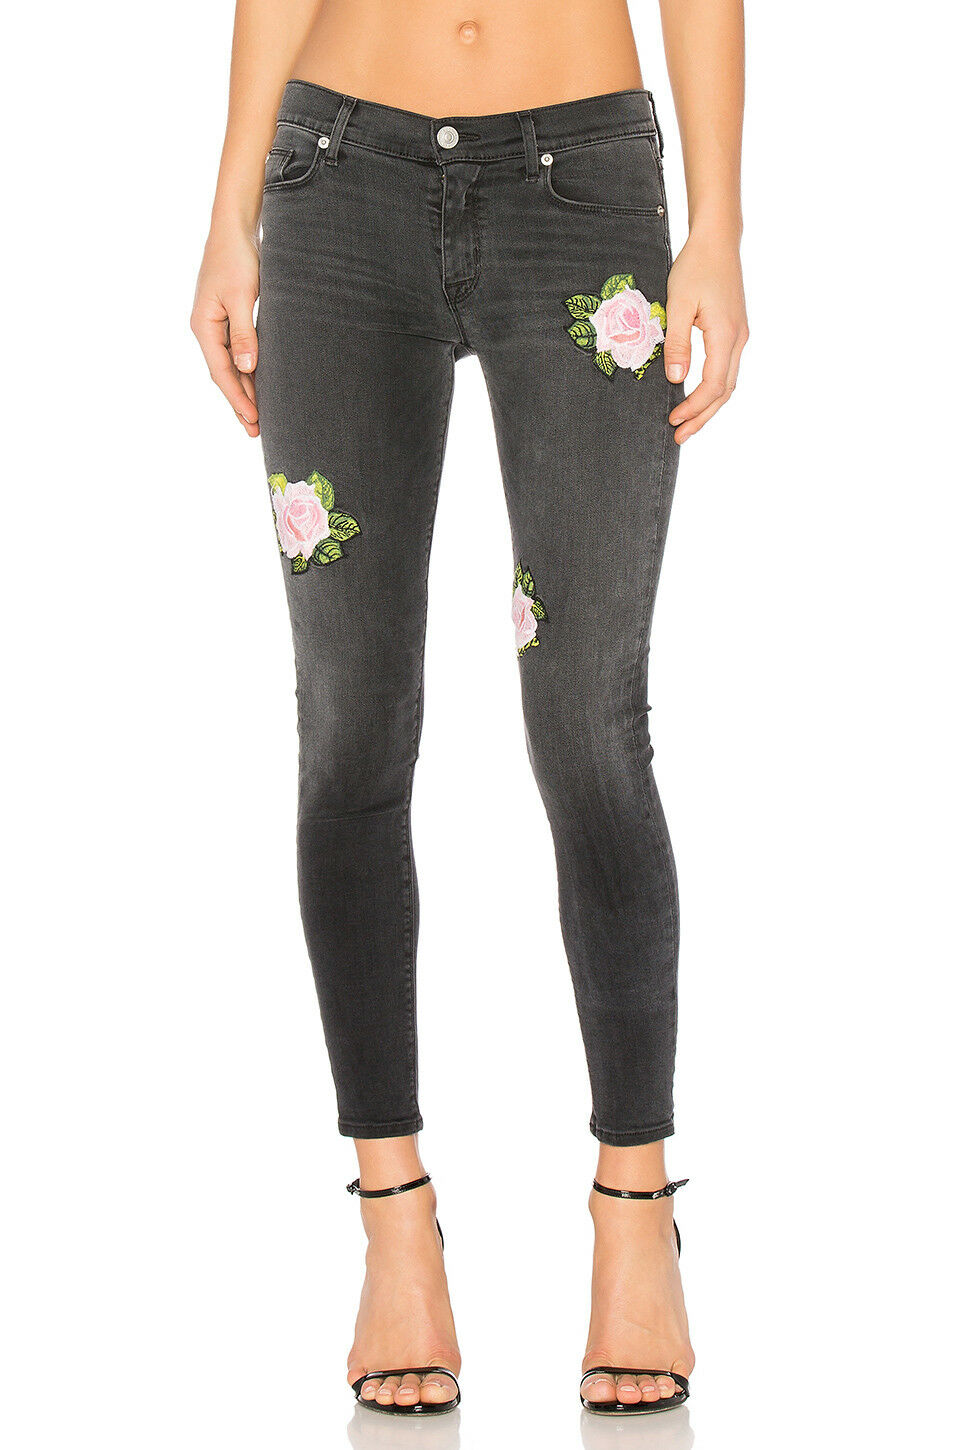 Hudson Nico Midrise Ankle Skinny Embroidered pink Jeans in Confronted - Size 28